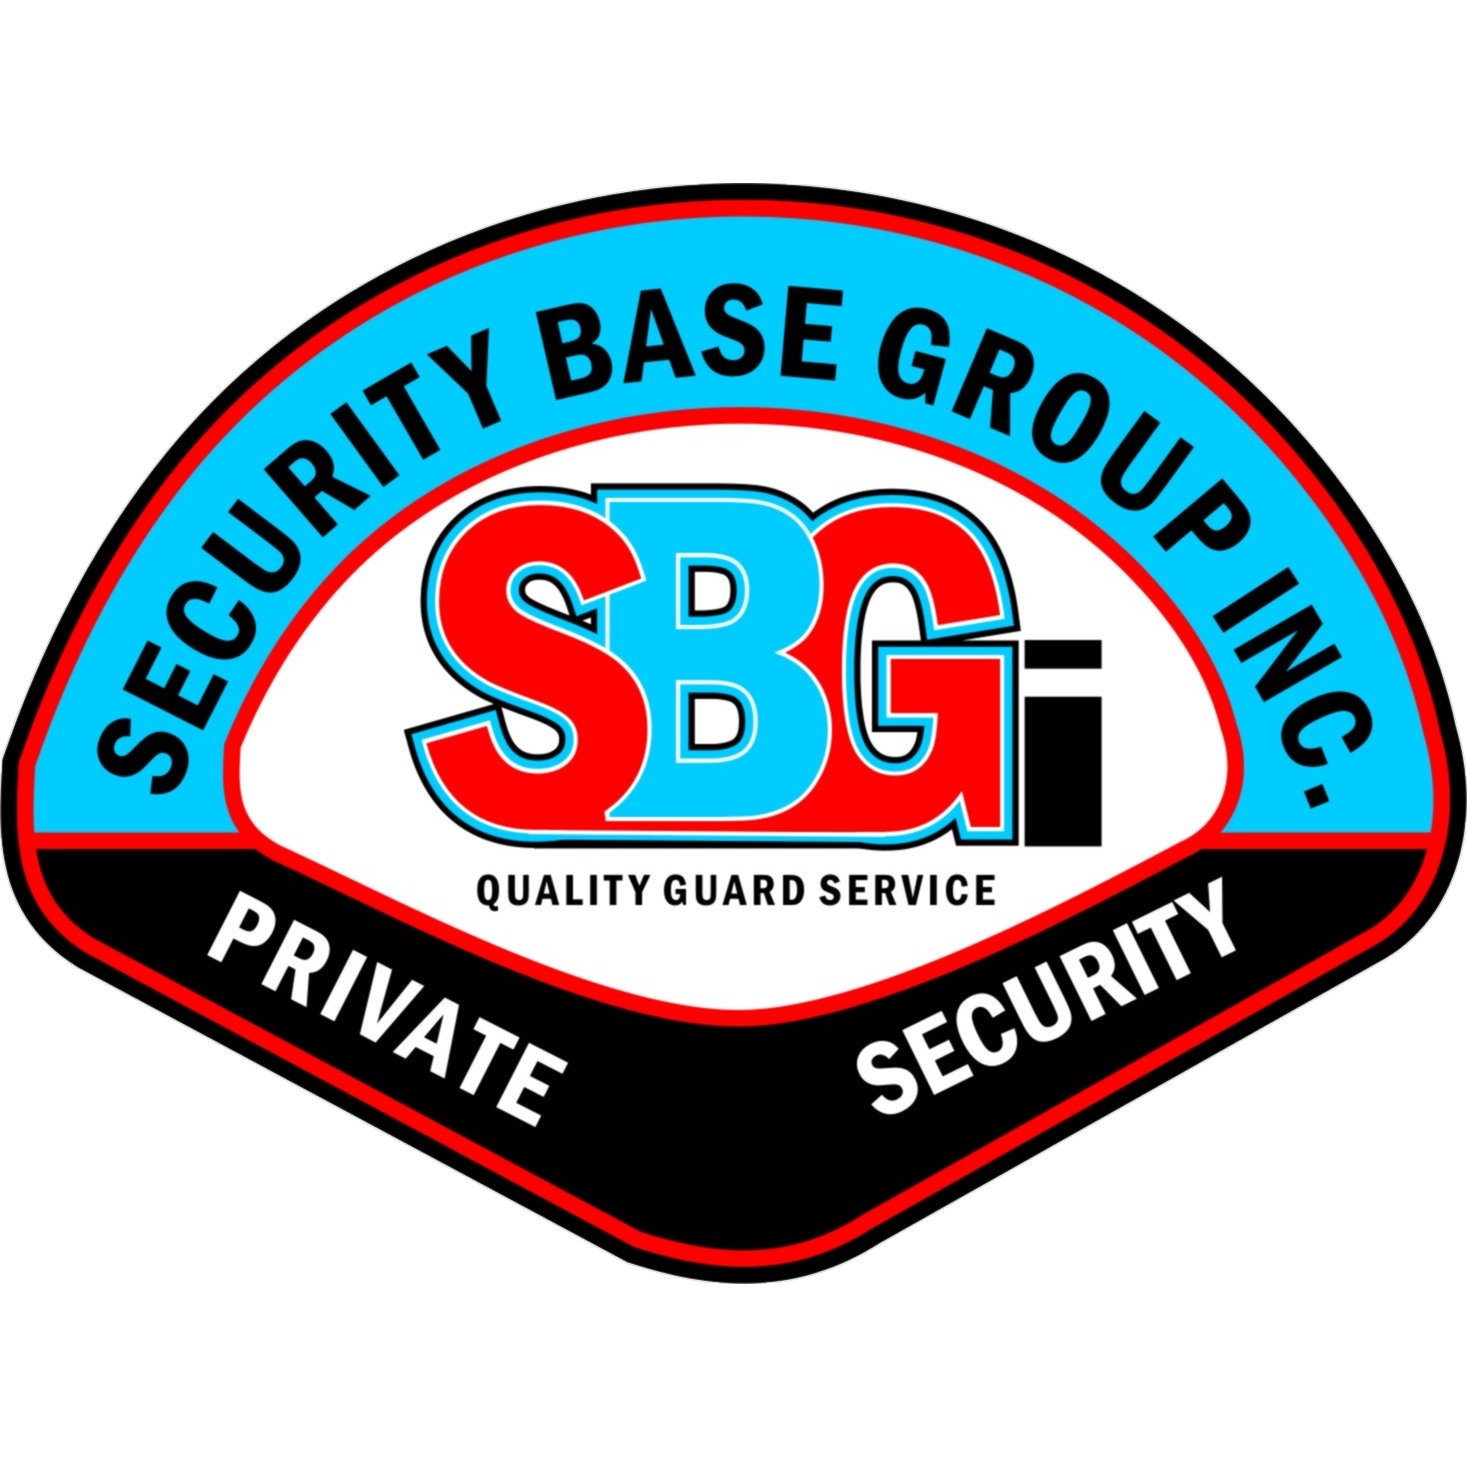 Security Base Group